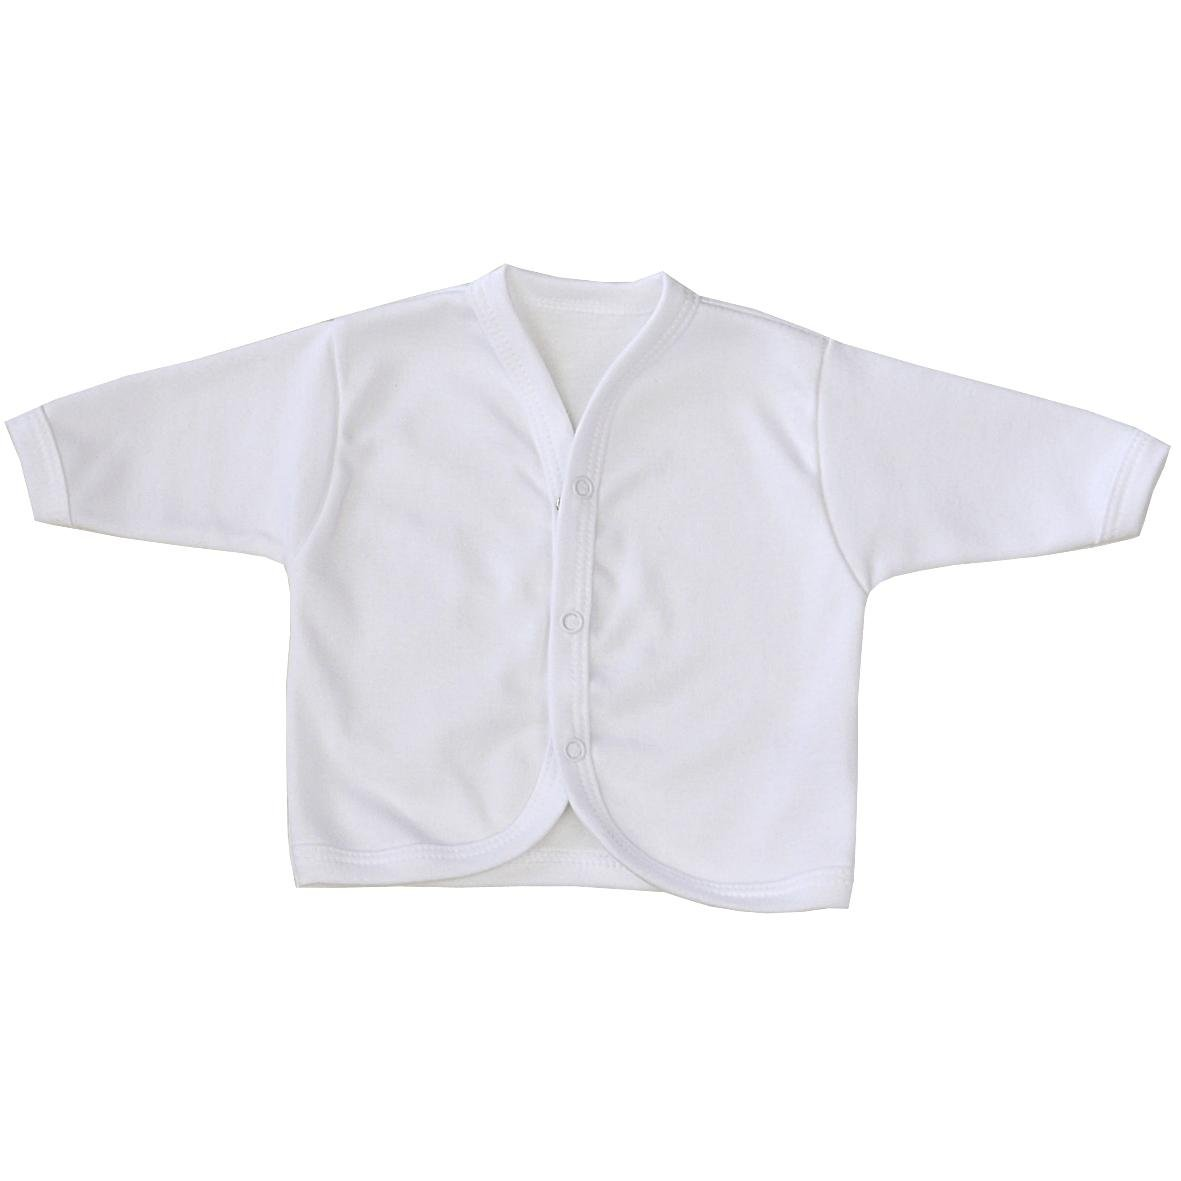 Amazon.com: BabyPrem Baby Cardigan Jacket Plain Cotton Clothes ...